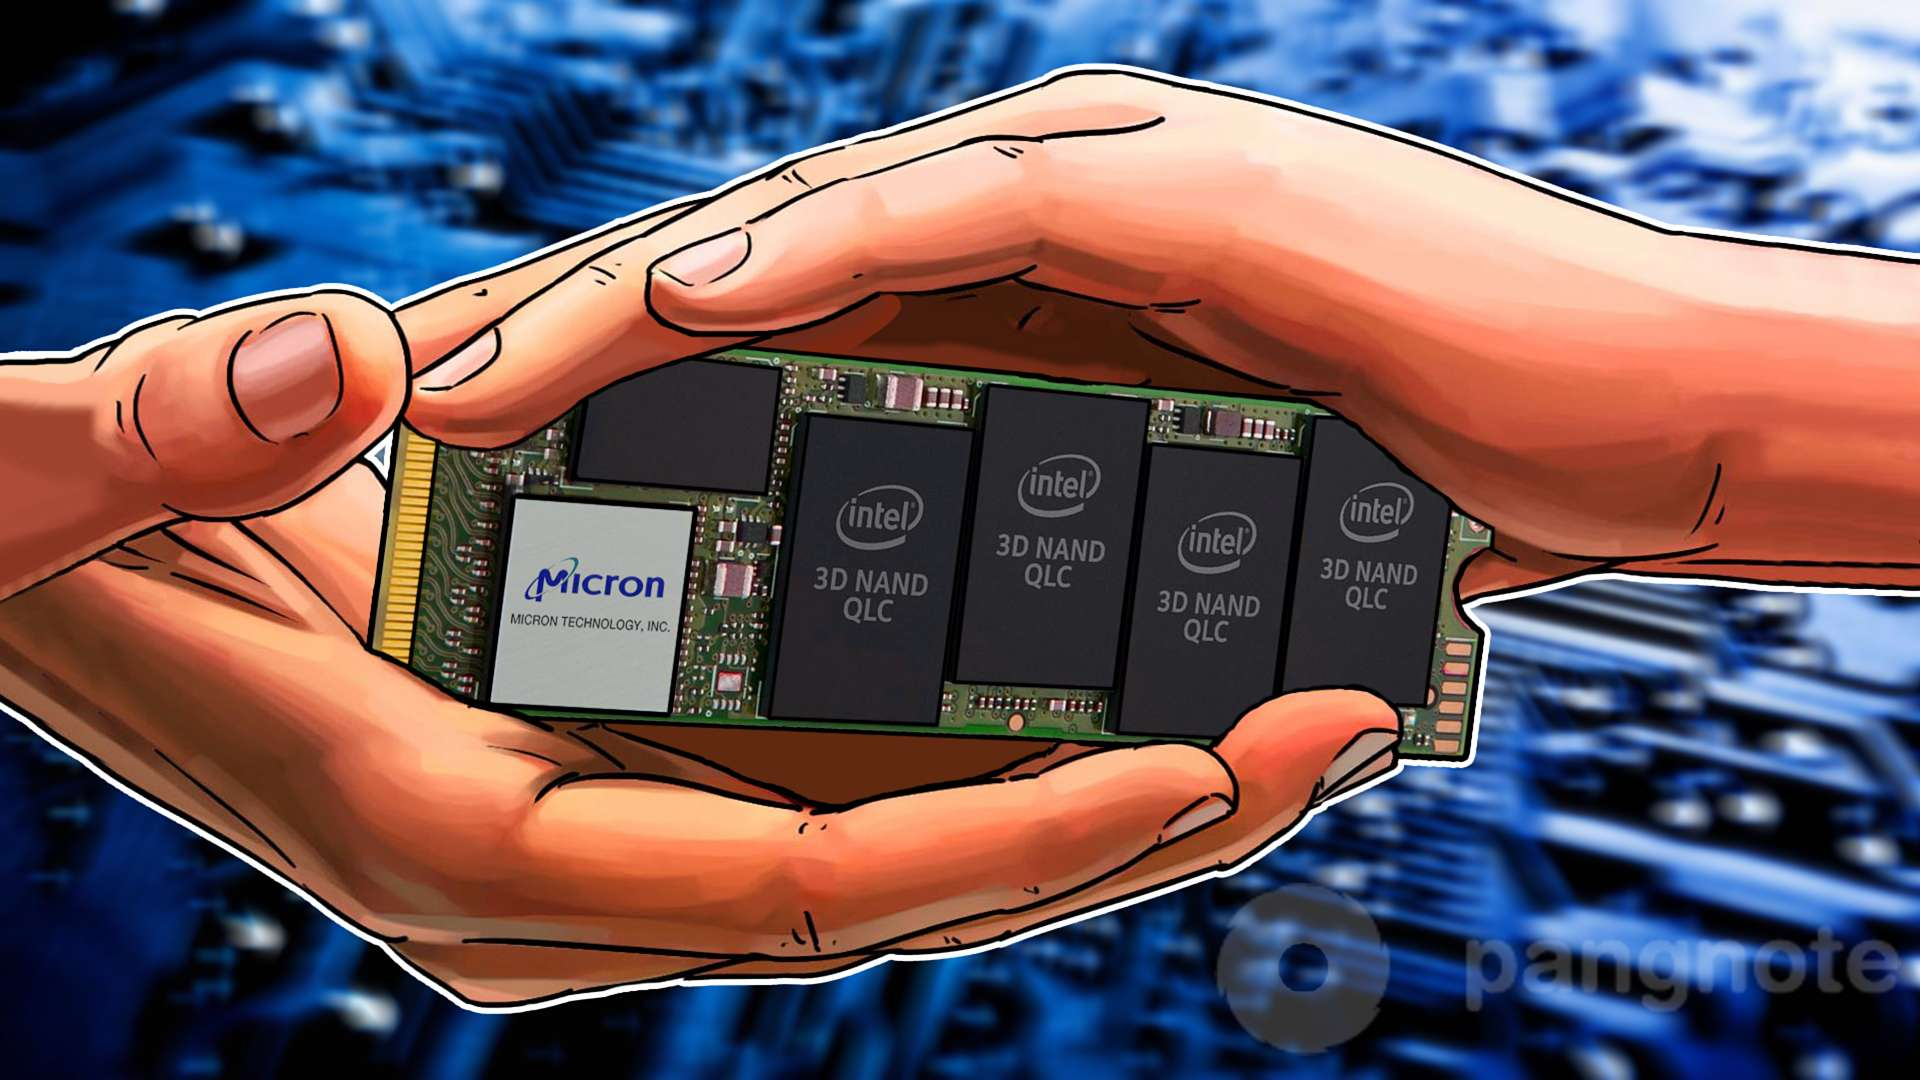 SSD based on 64-layer 3D NAND developed by Intel and Micron